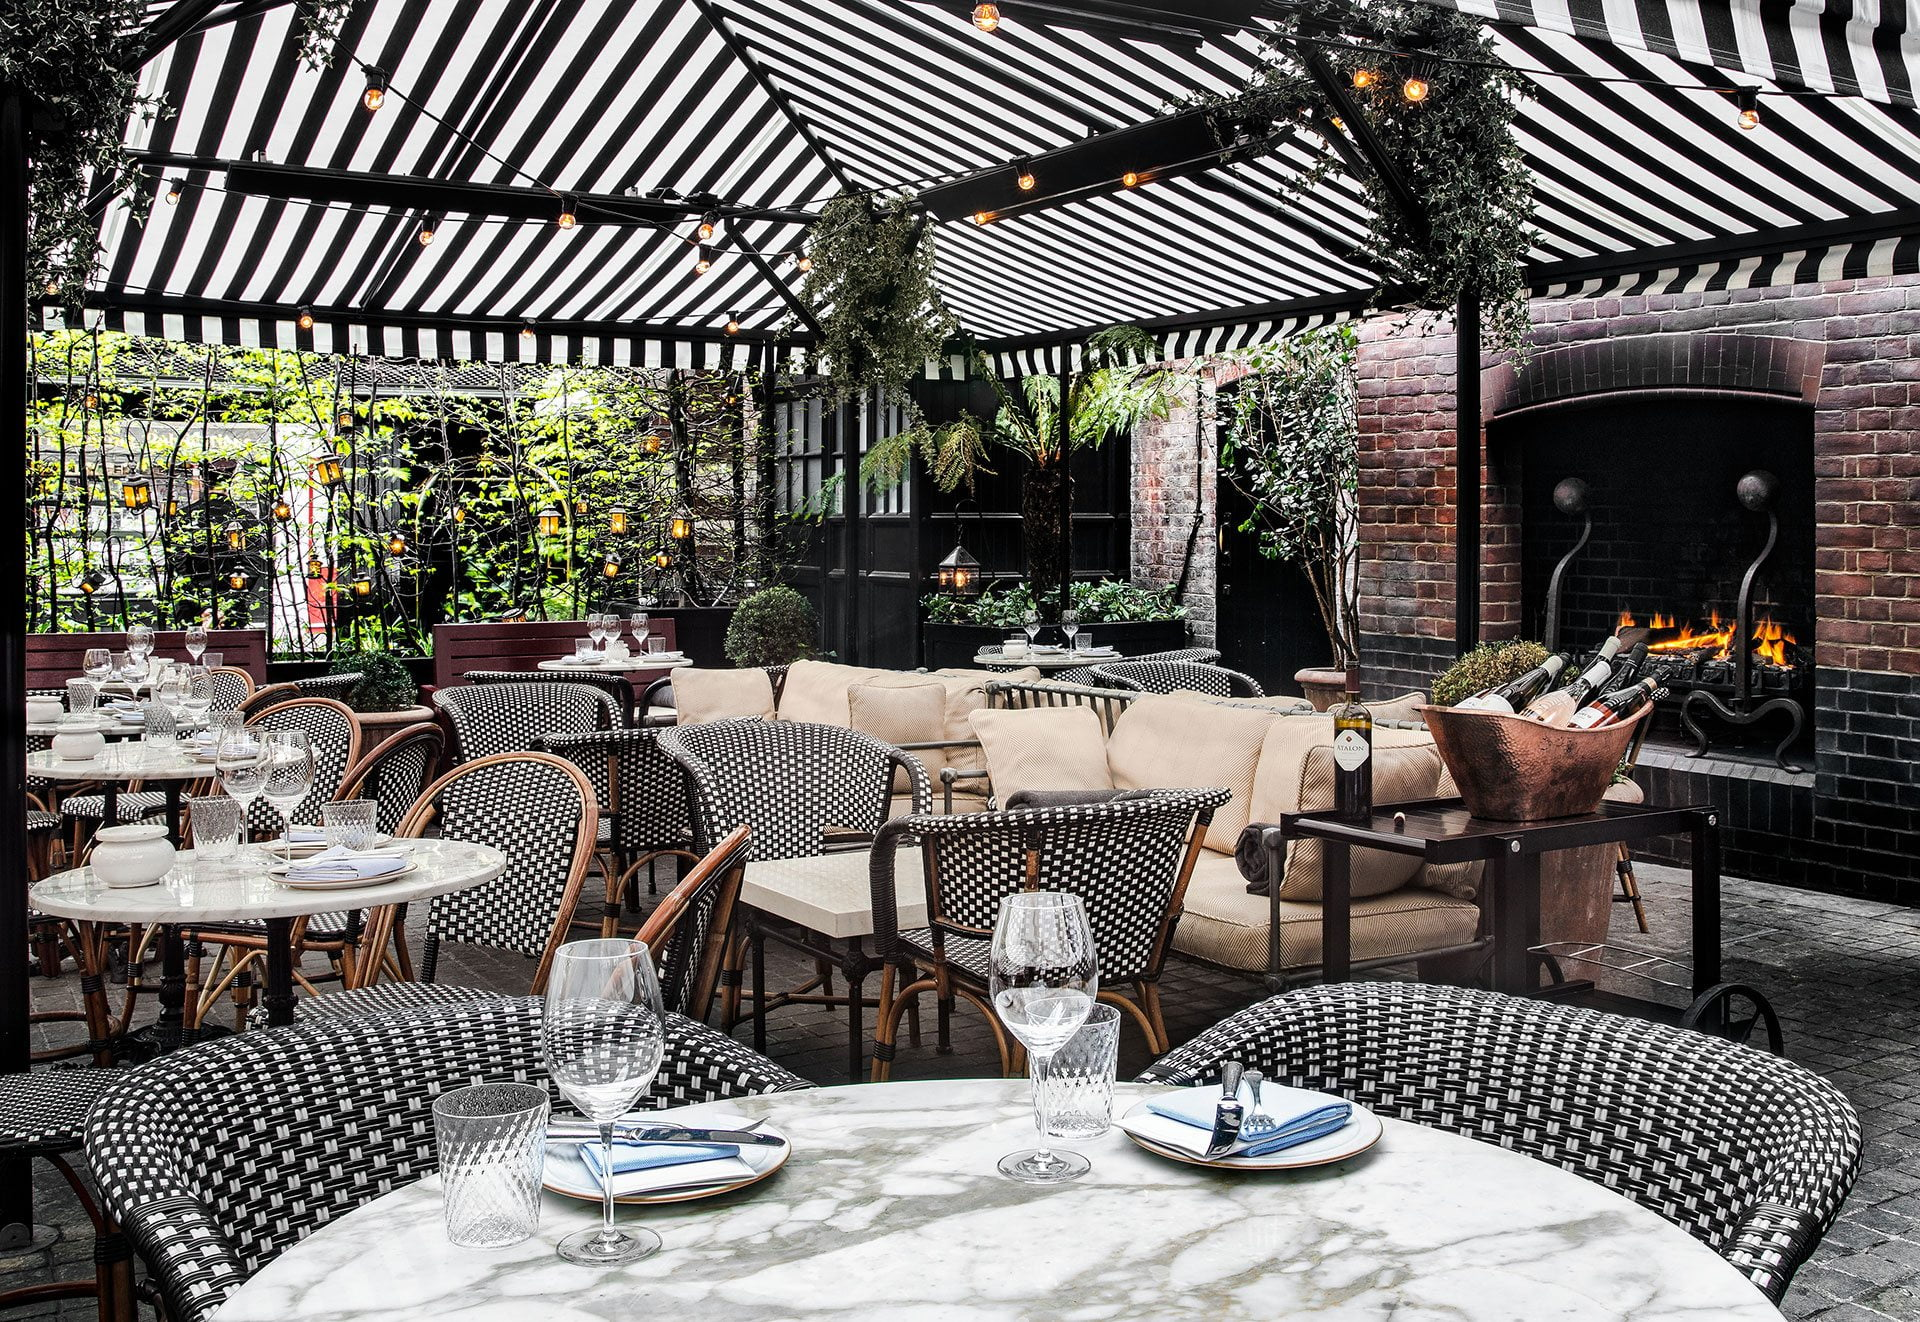 chiltern firehouse outdoor dining